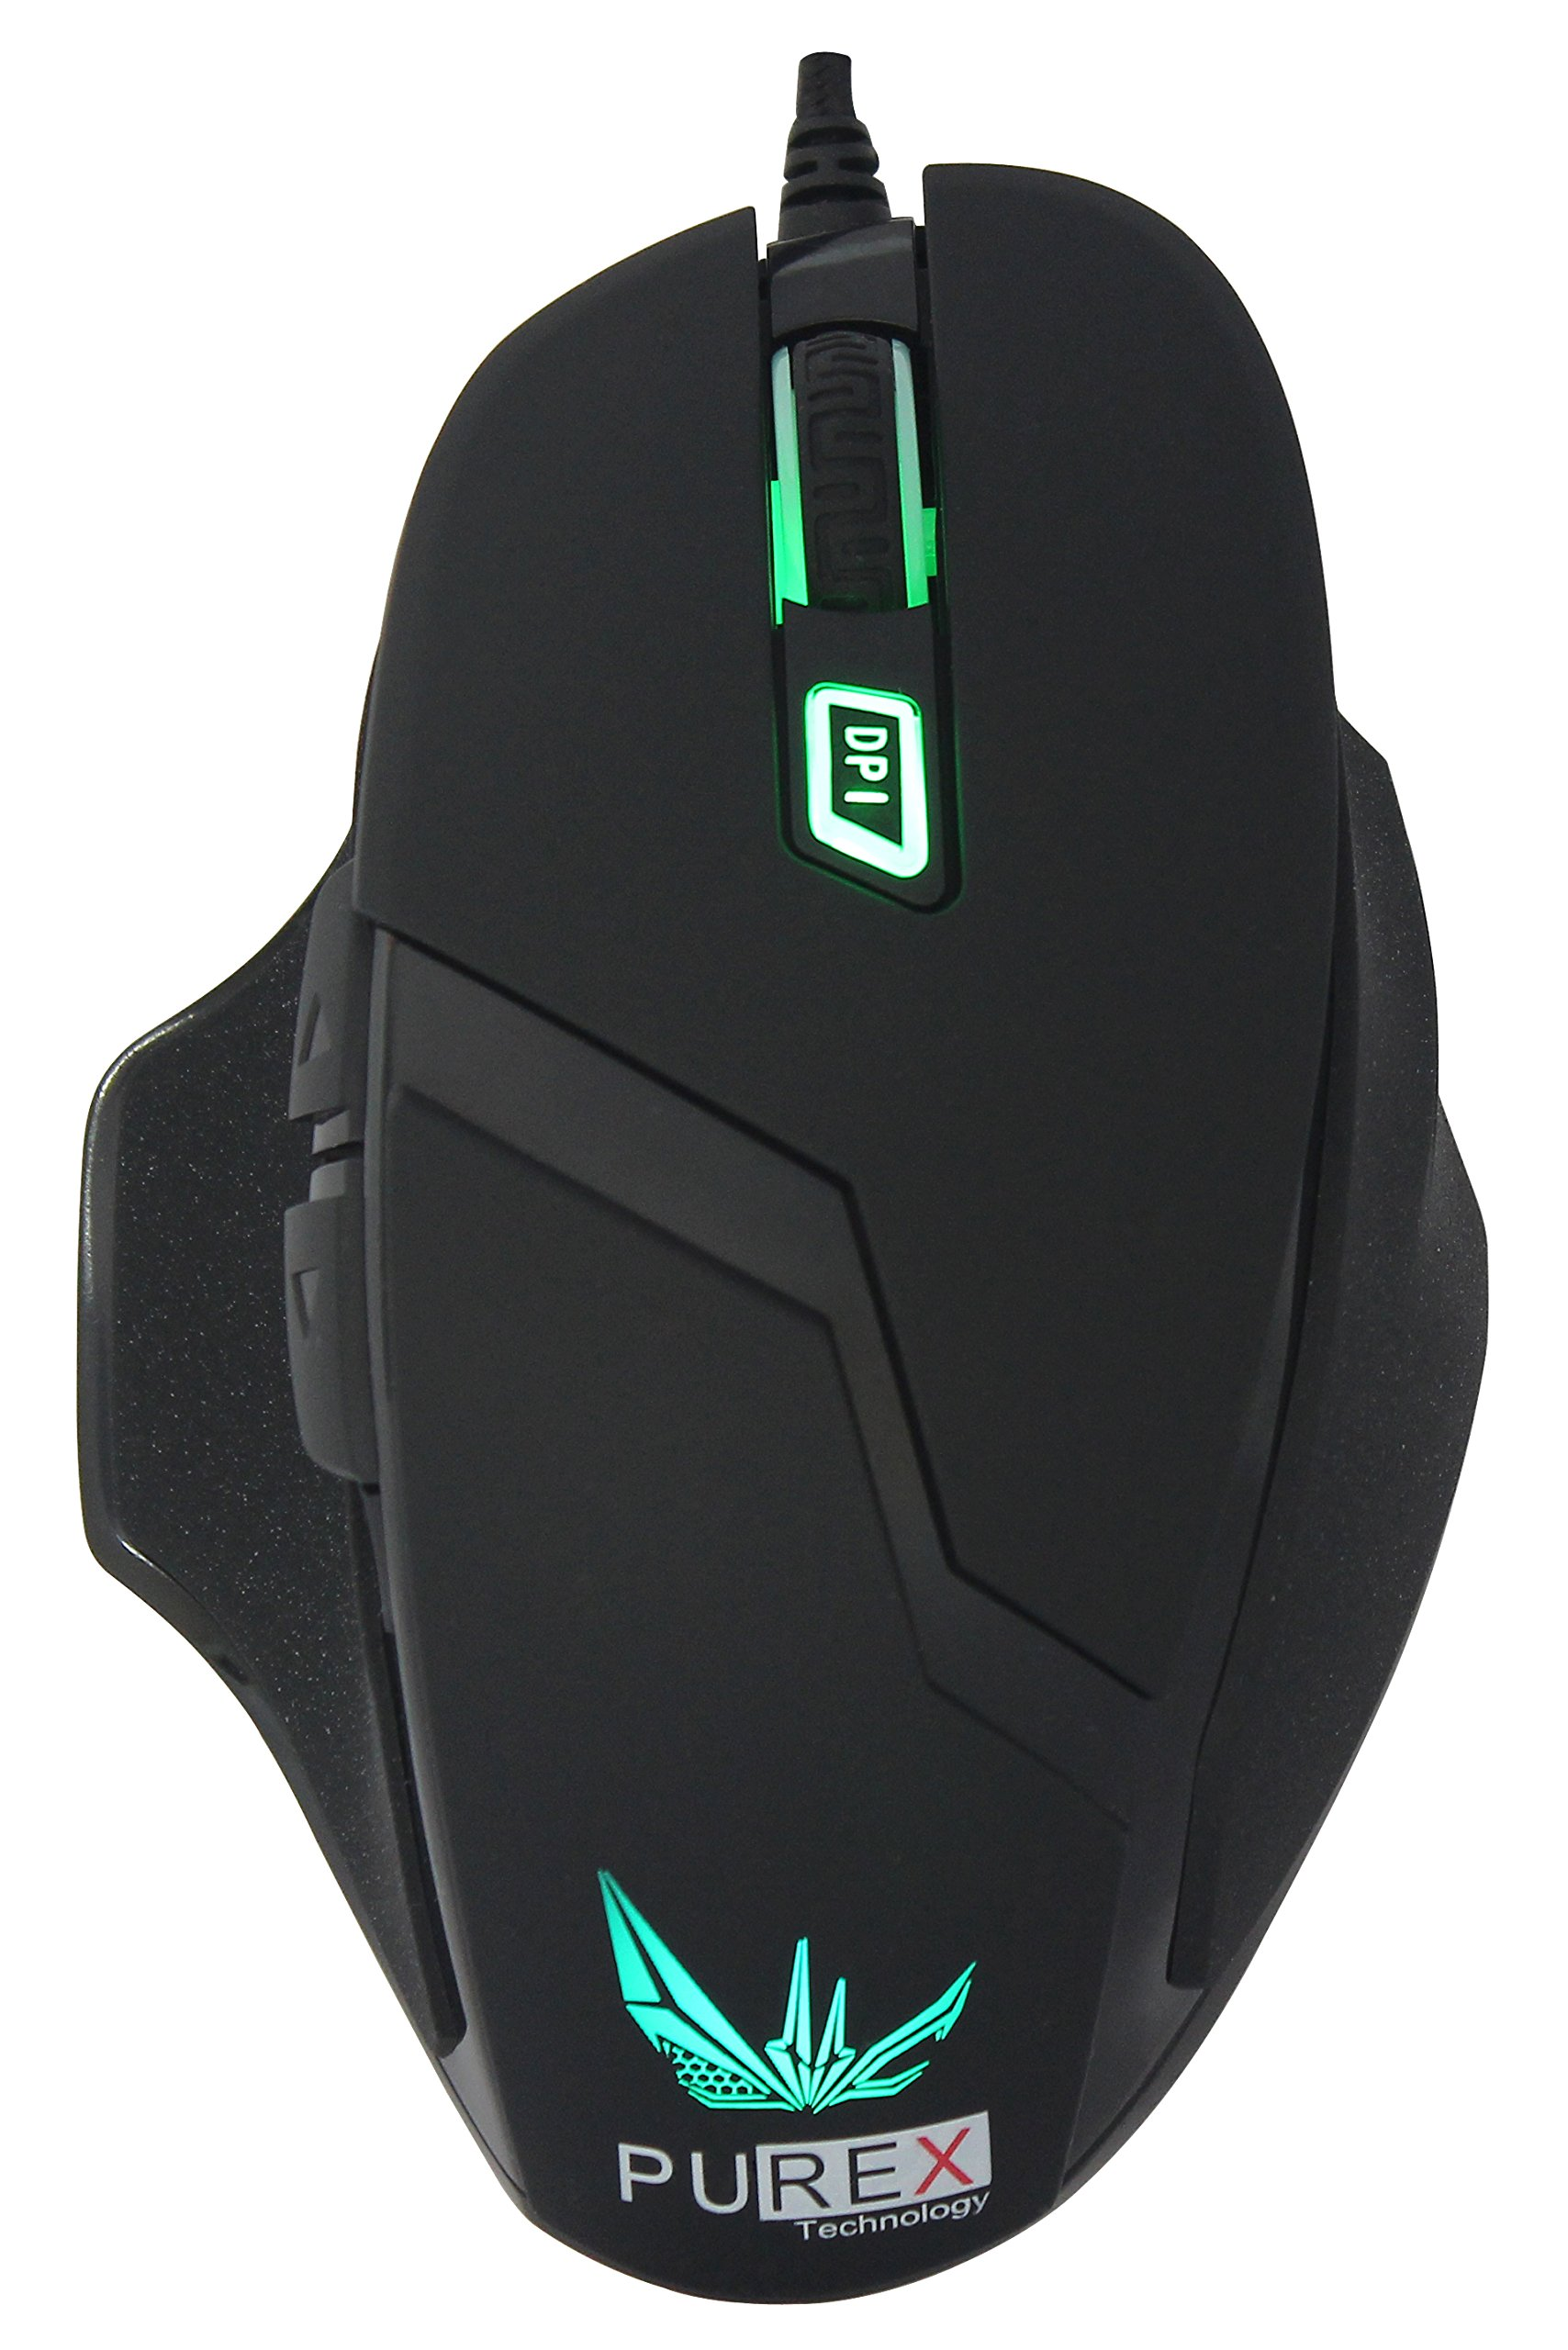 Mouse Gamer : PUREX Technology 4000 DPI High Precision Progr